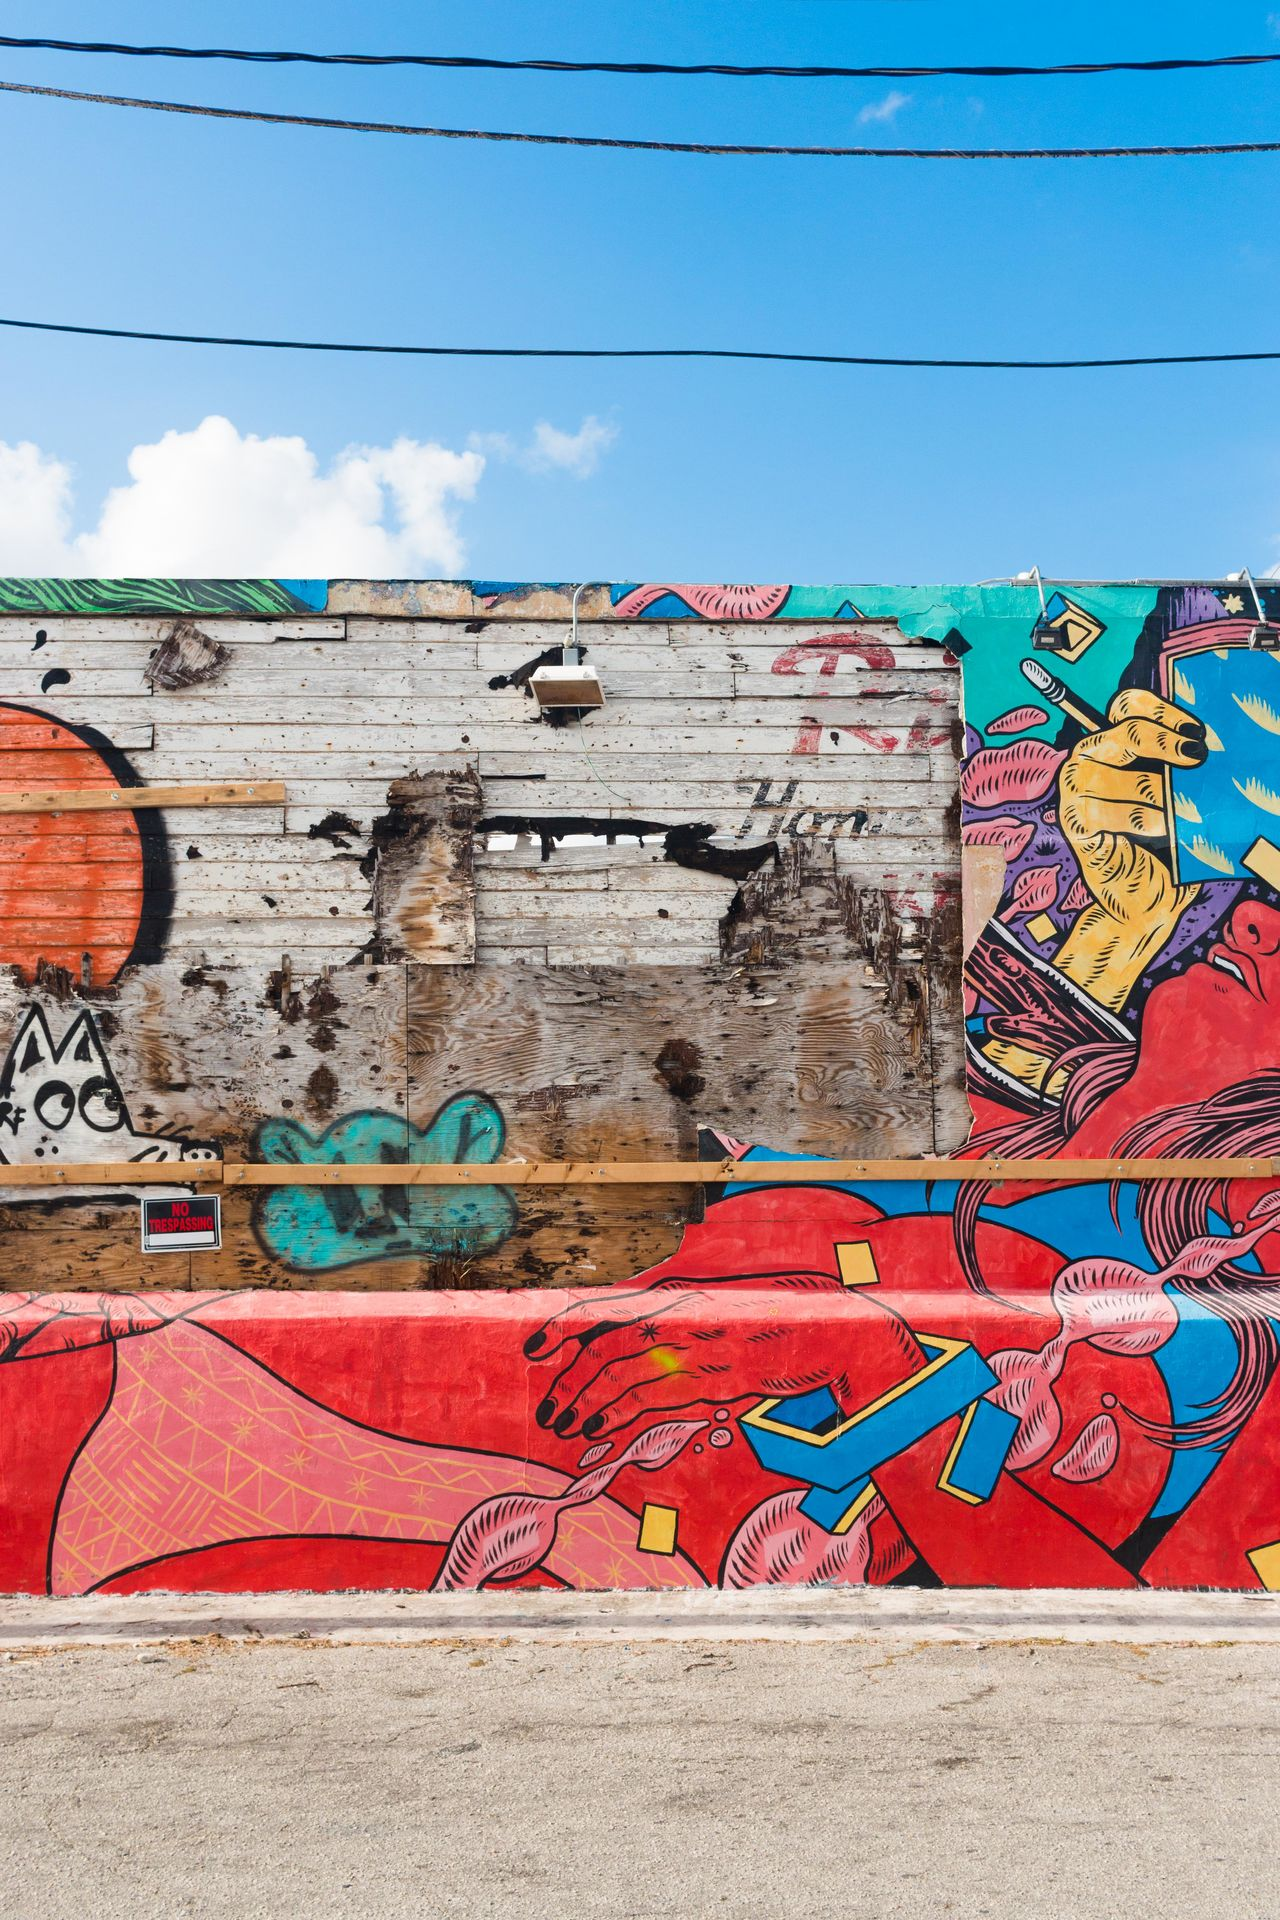 Architecture Building Exterior Built Structure City Day Graffiti Multi Colored No People Outdoors Red Sky Street Art Travel Destinations Wynwood Art Distri Wynwood Walls Wynwoodwalls First Eyeem Photo Neighborhood Map